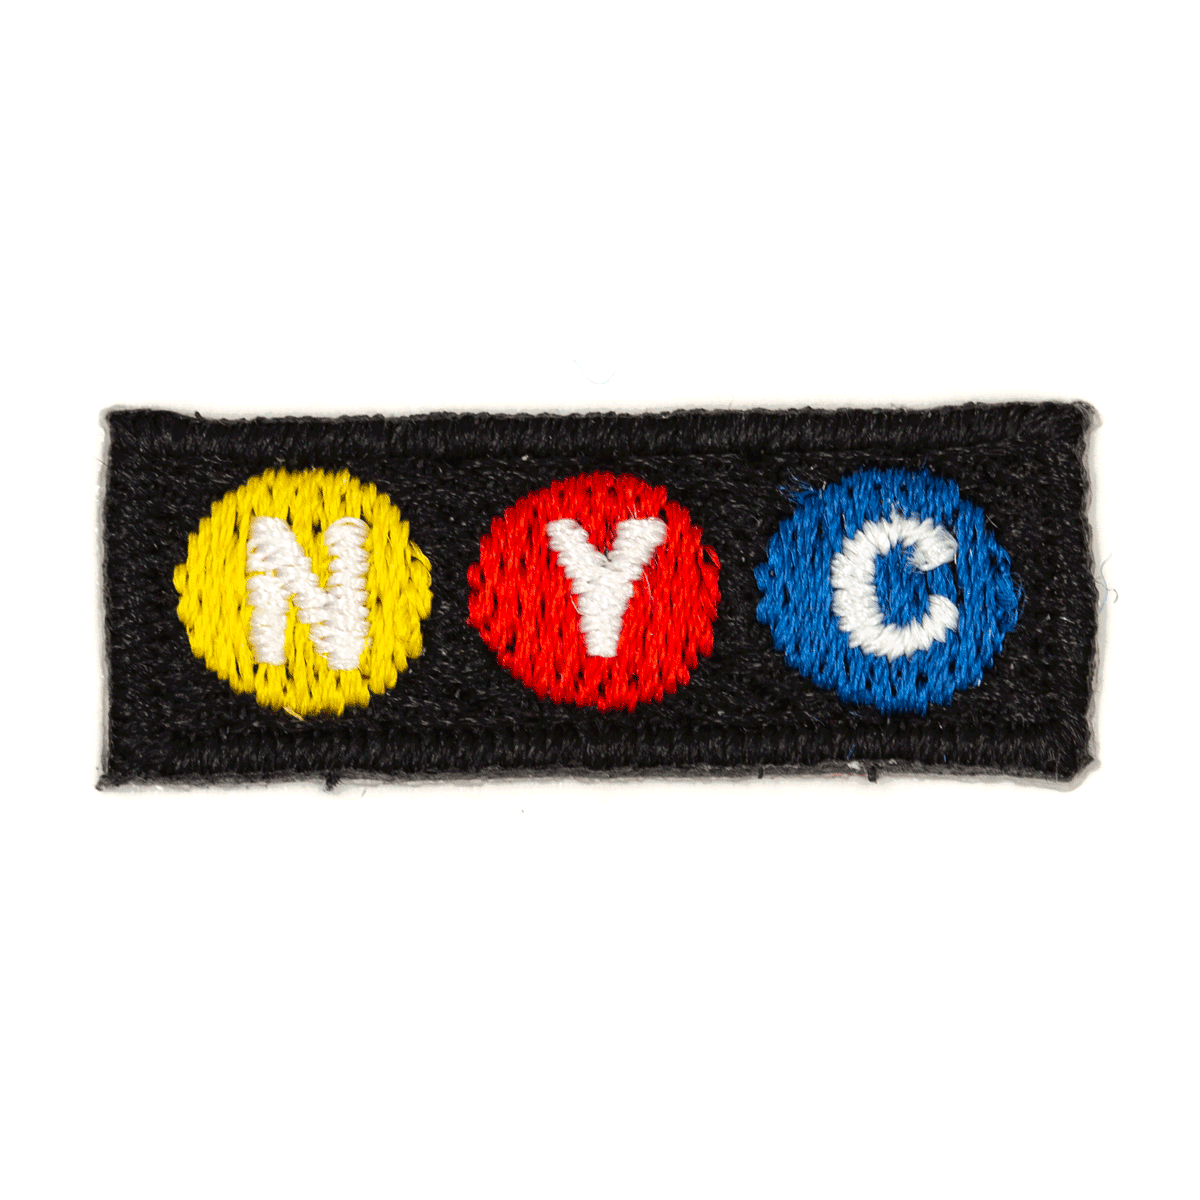 NYC Subway Sticker Patch